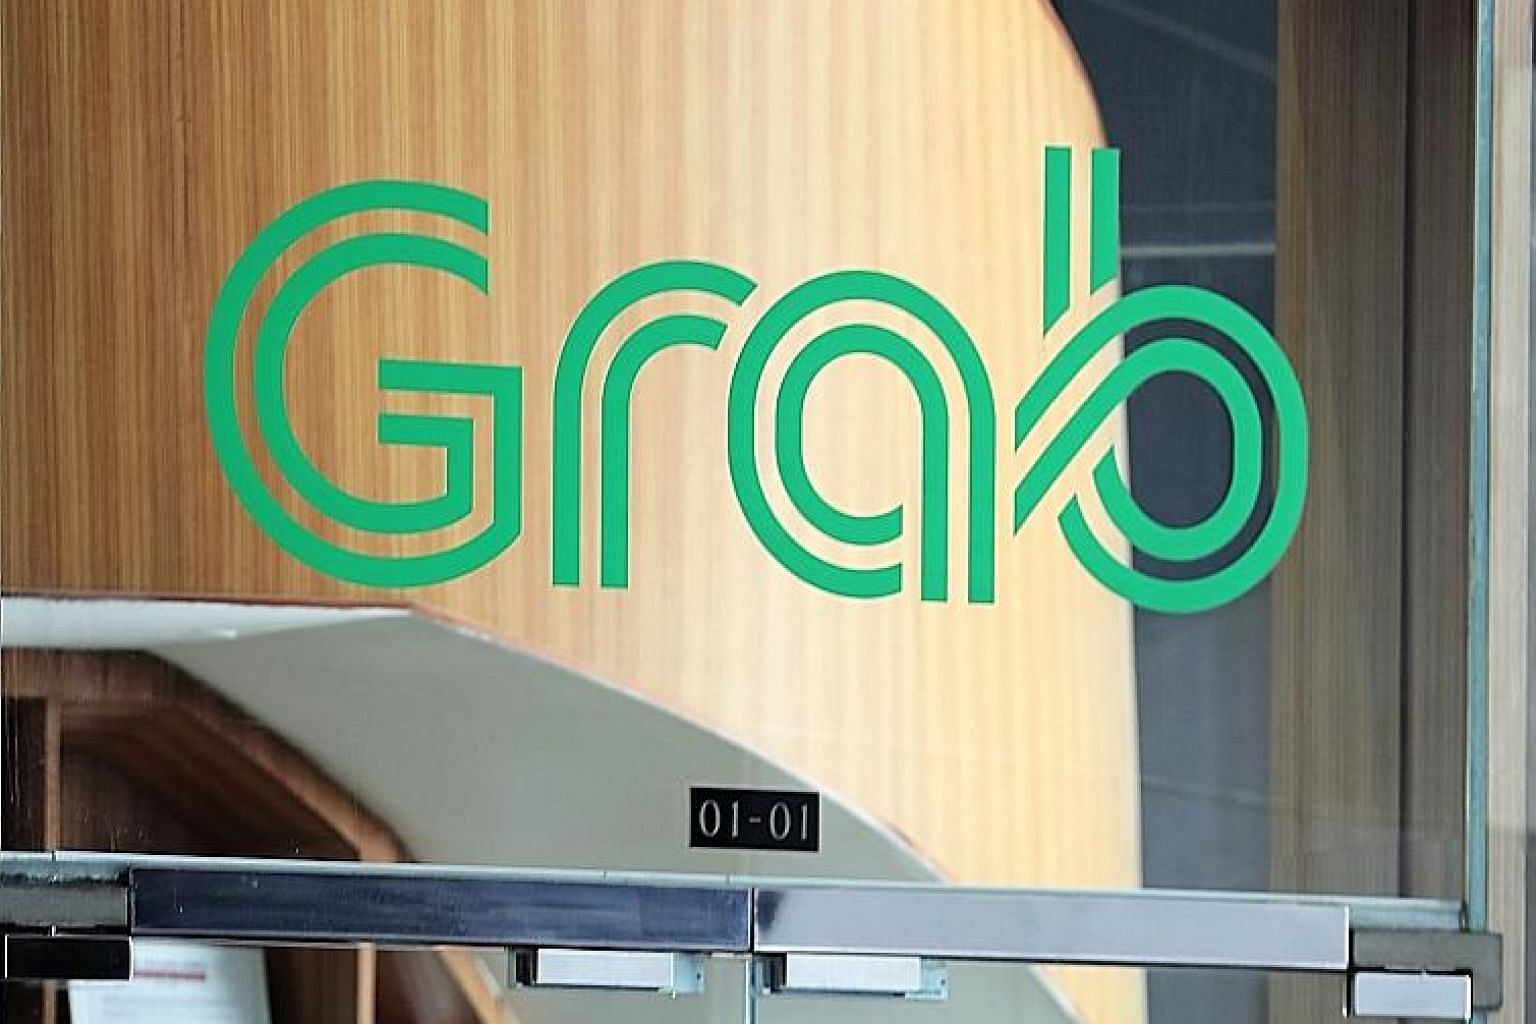 Grab's financial services arm is rolling out AutoInvest, which lets users invest sums as small as $1 while spending in Grab's ecosystem. ST PHOTO: KELVIN CHNG